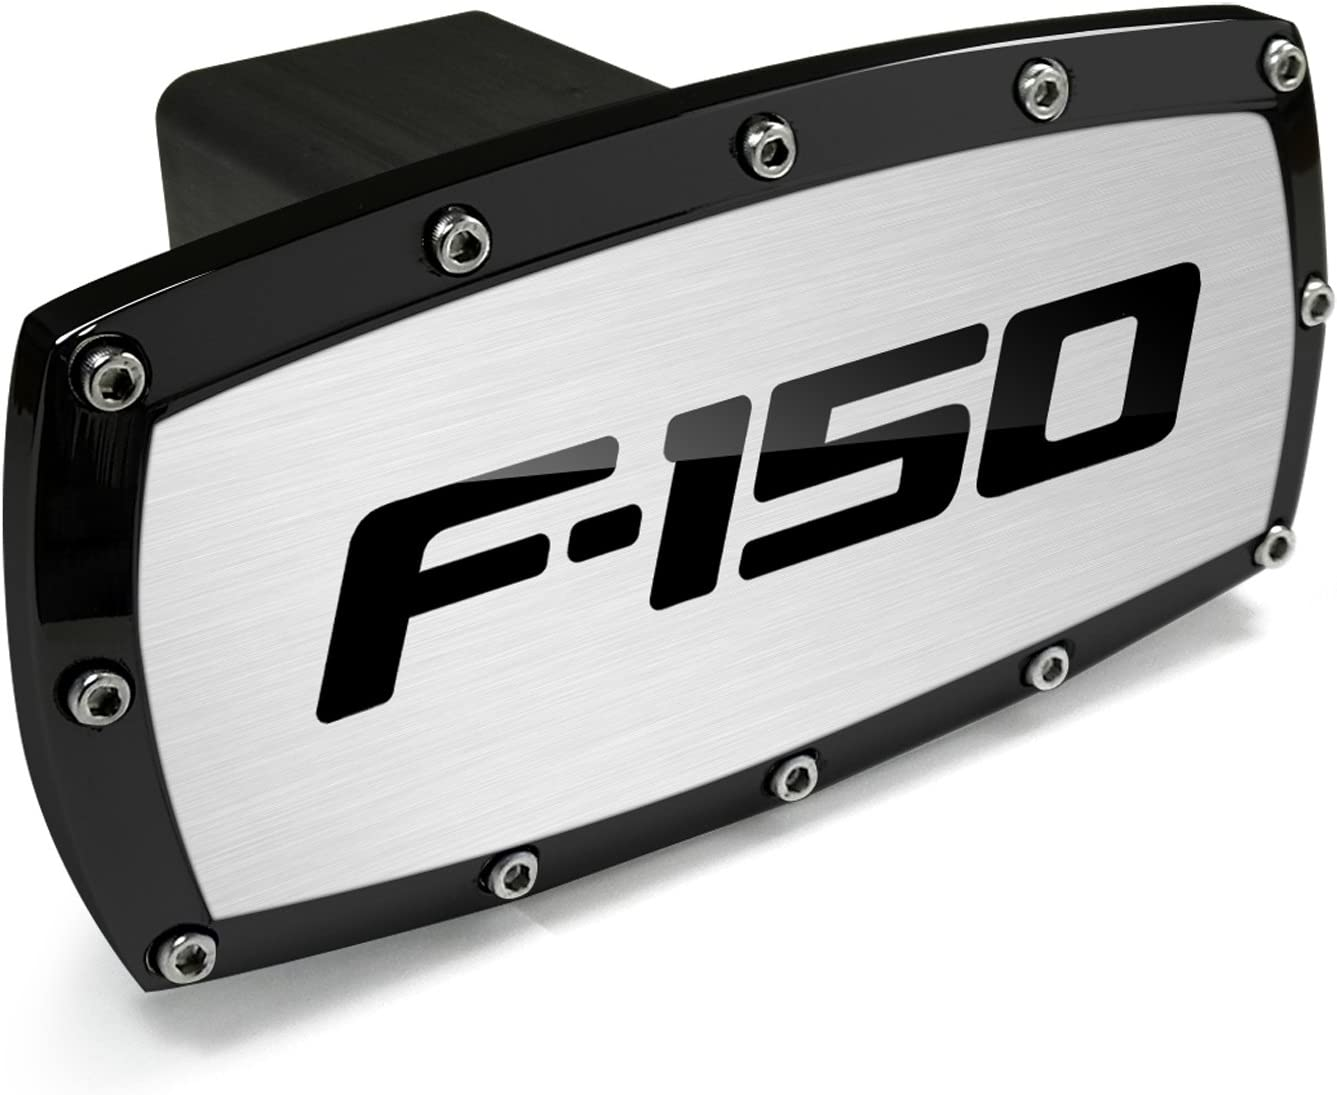 Ford F-150 Hitch Cover